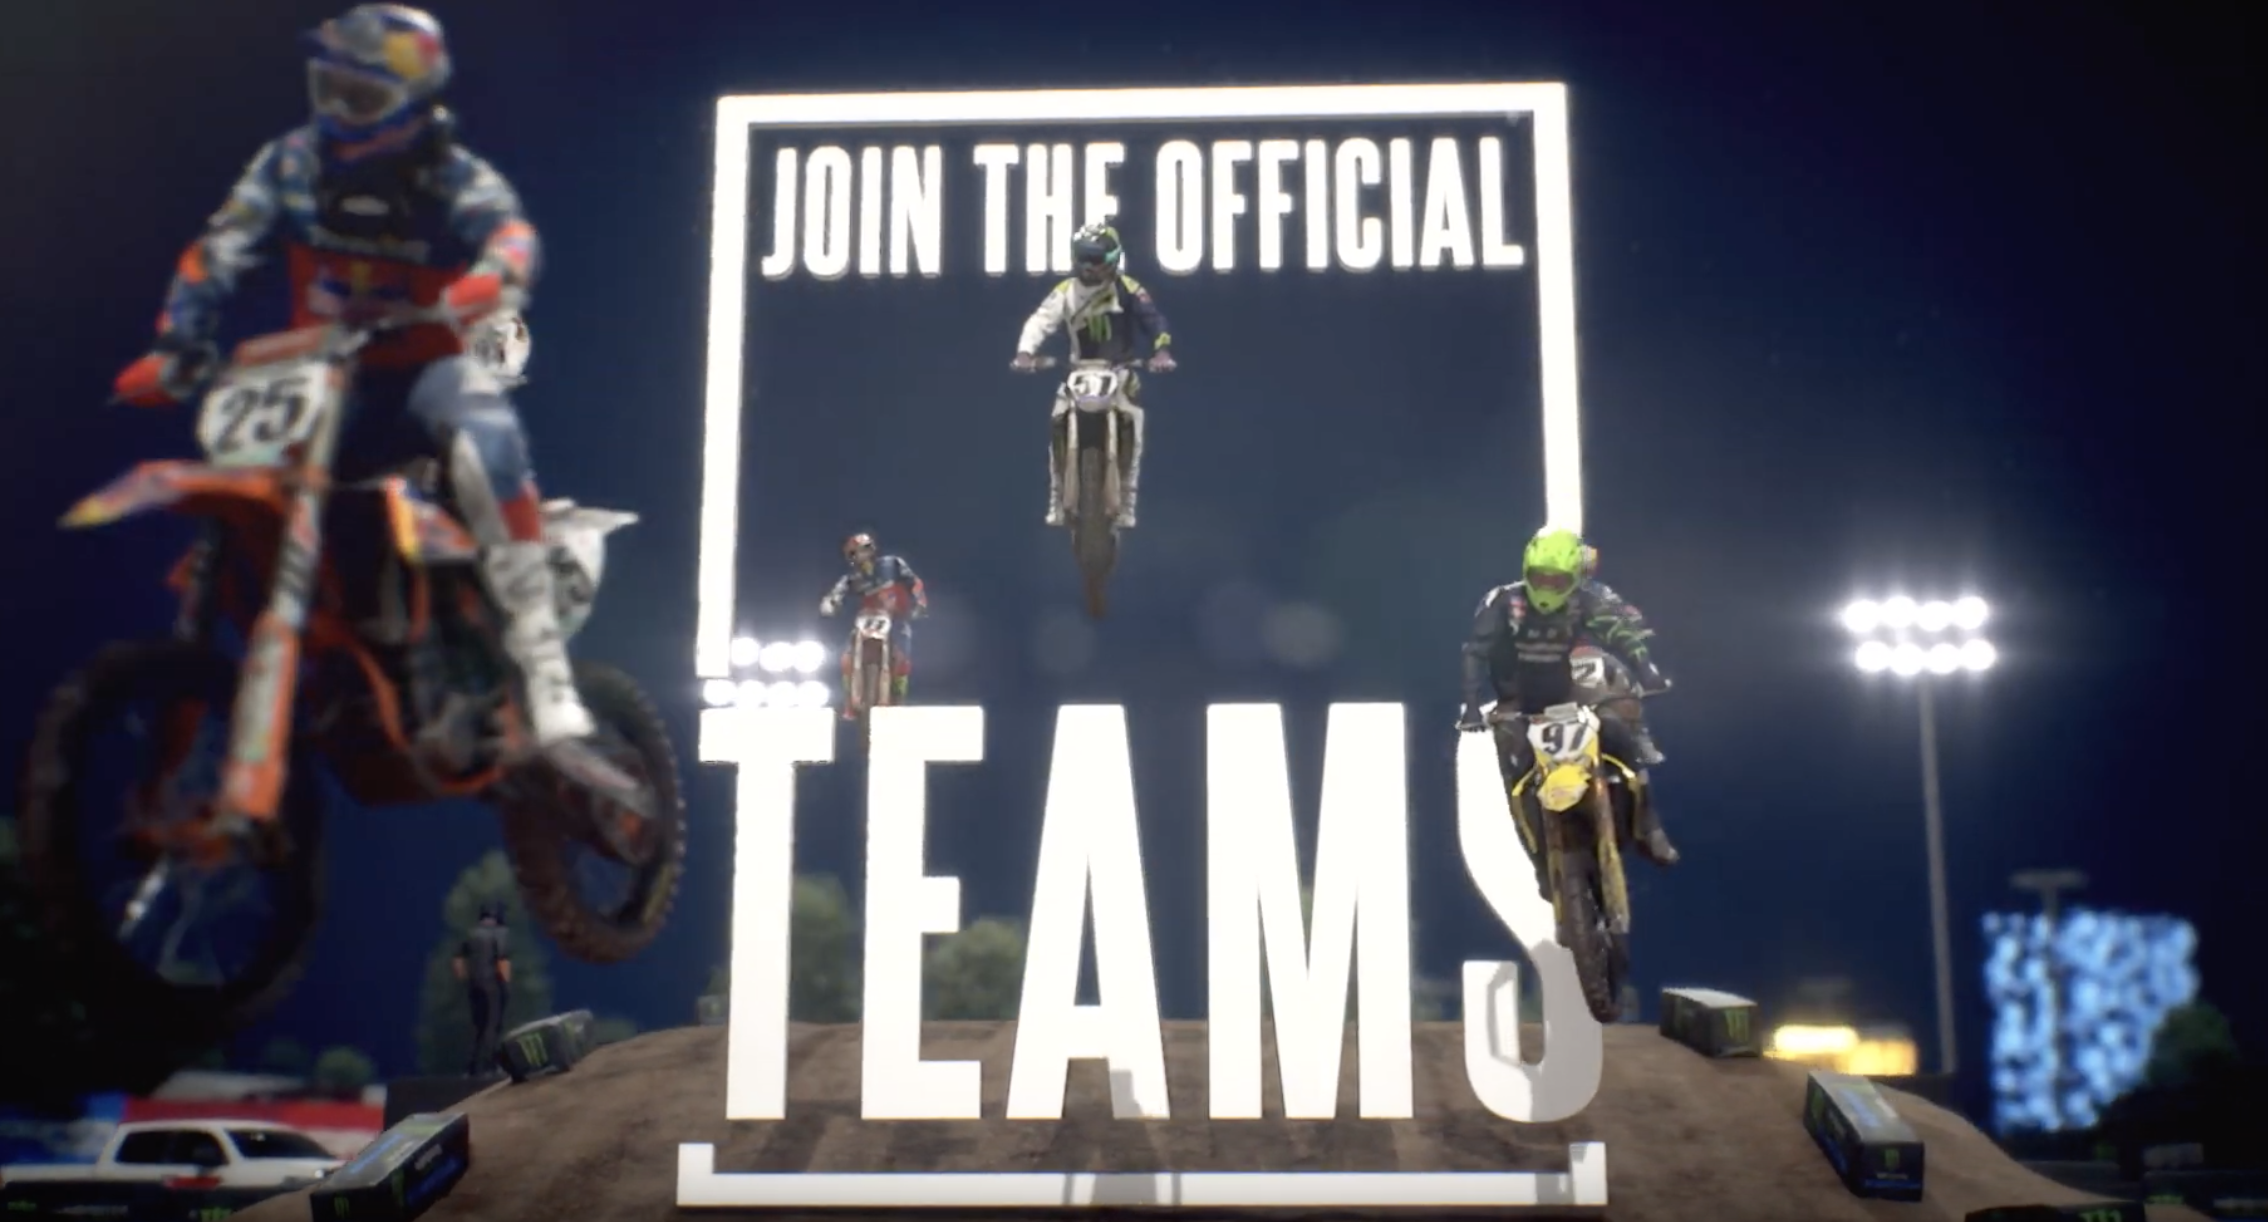 Join The Official Teams